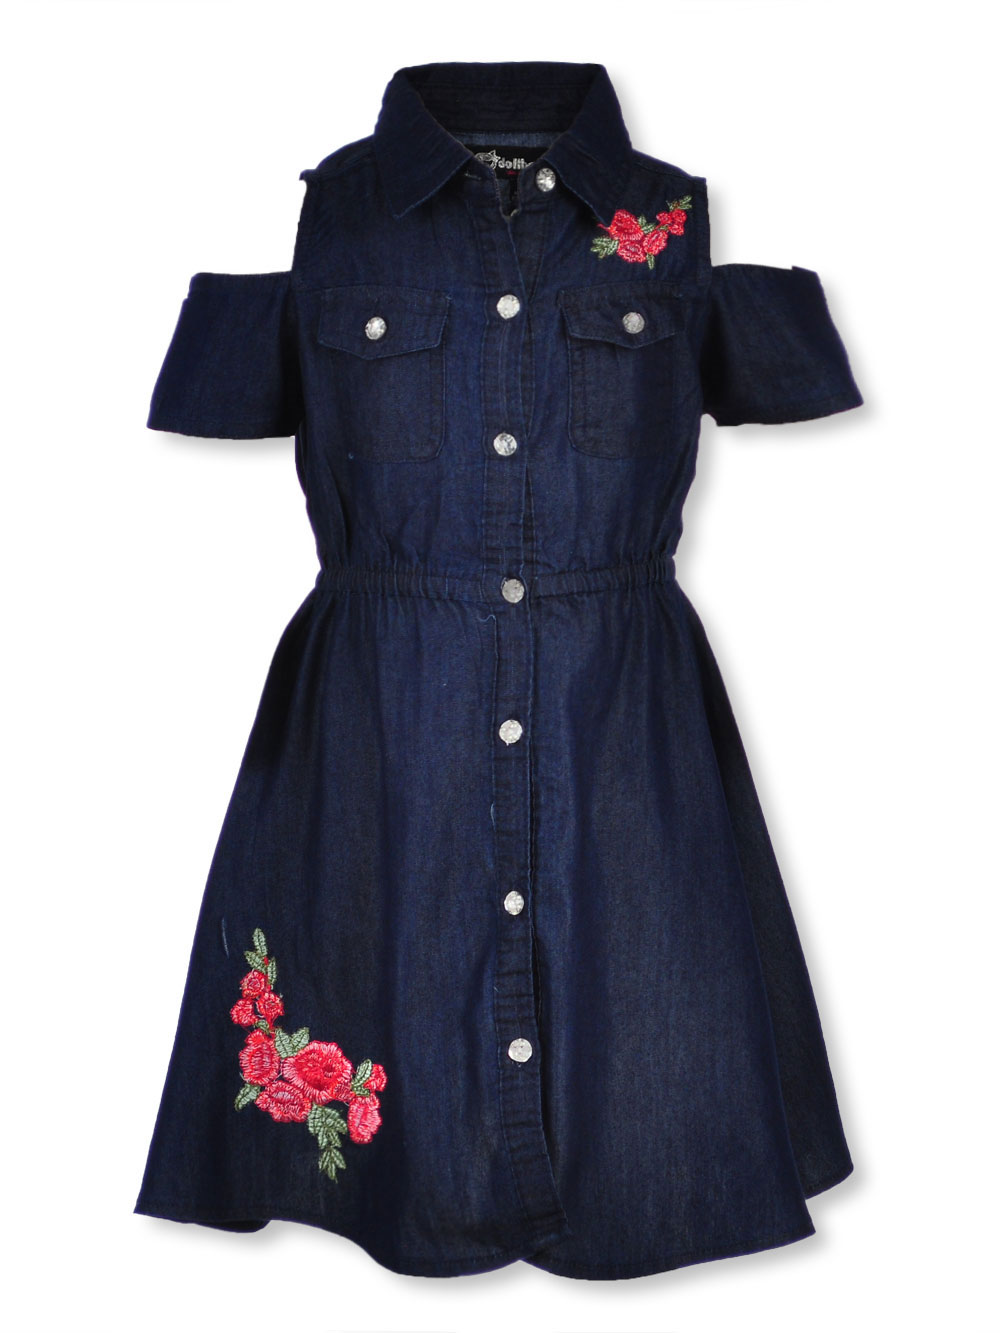 343191e71d9c6c Girls' Cold Shoulder Dress by Dollhouse in dark denim and light ...